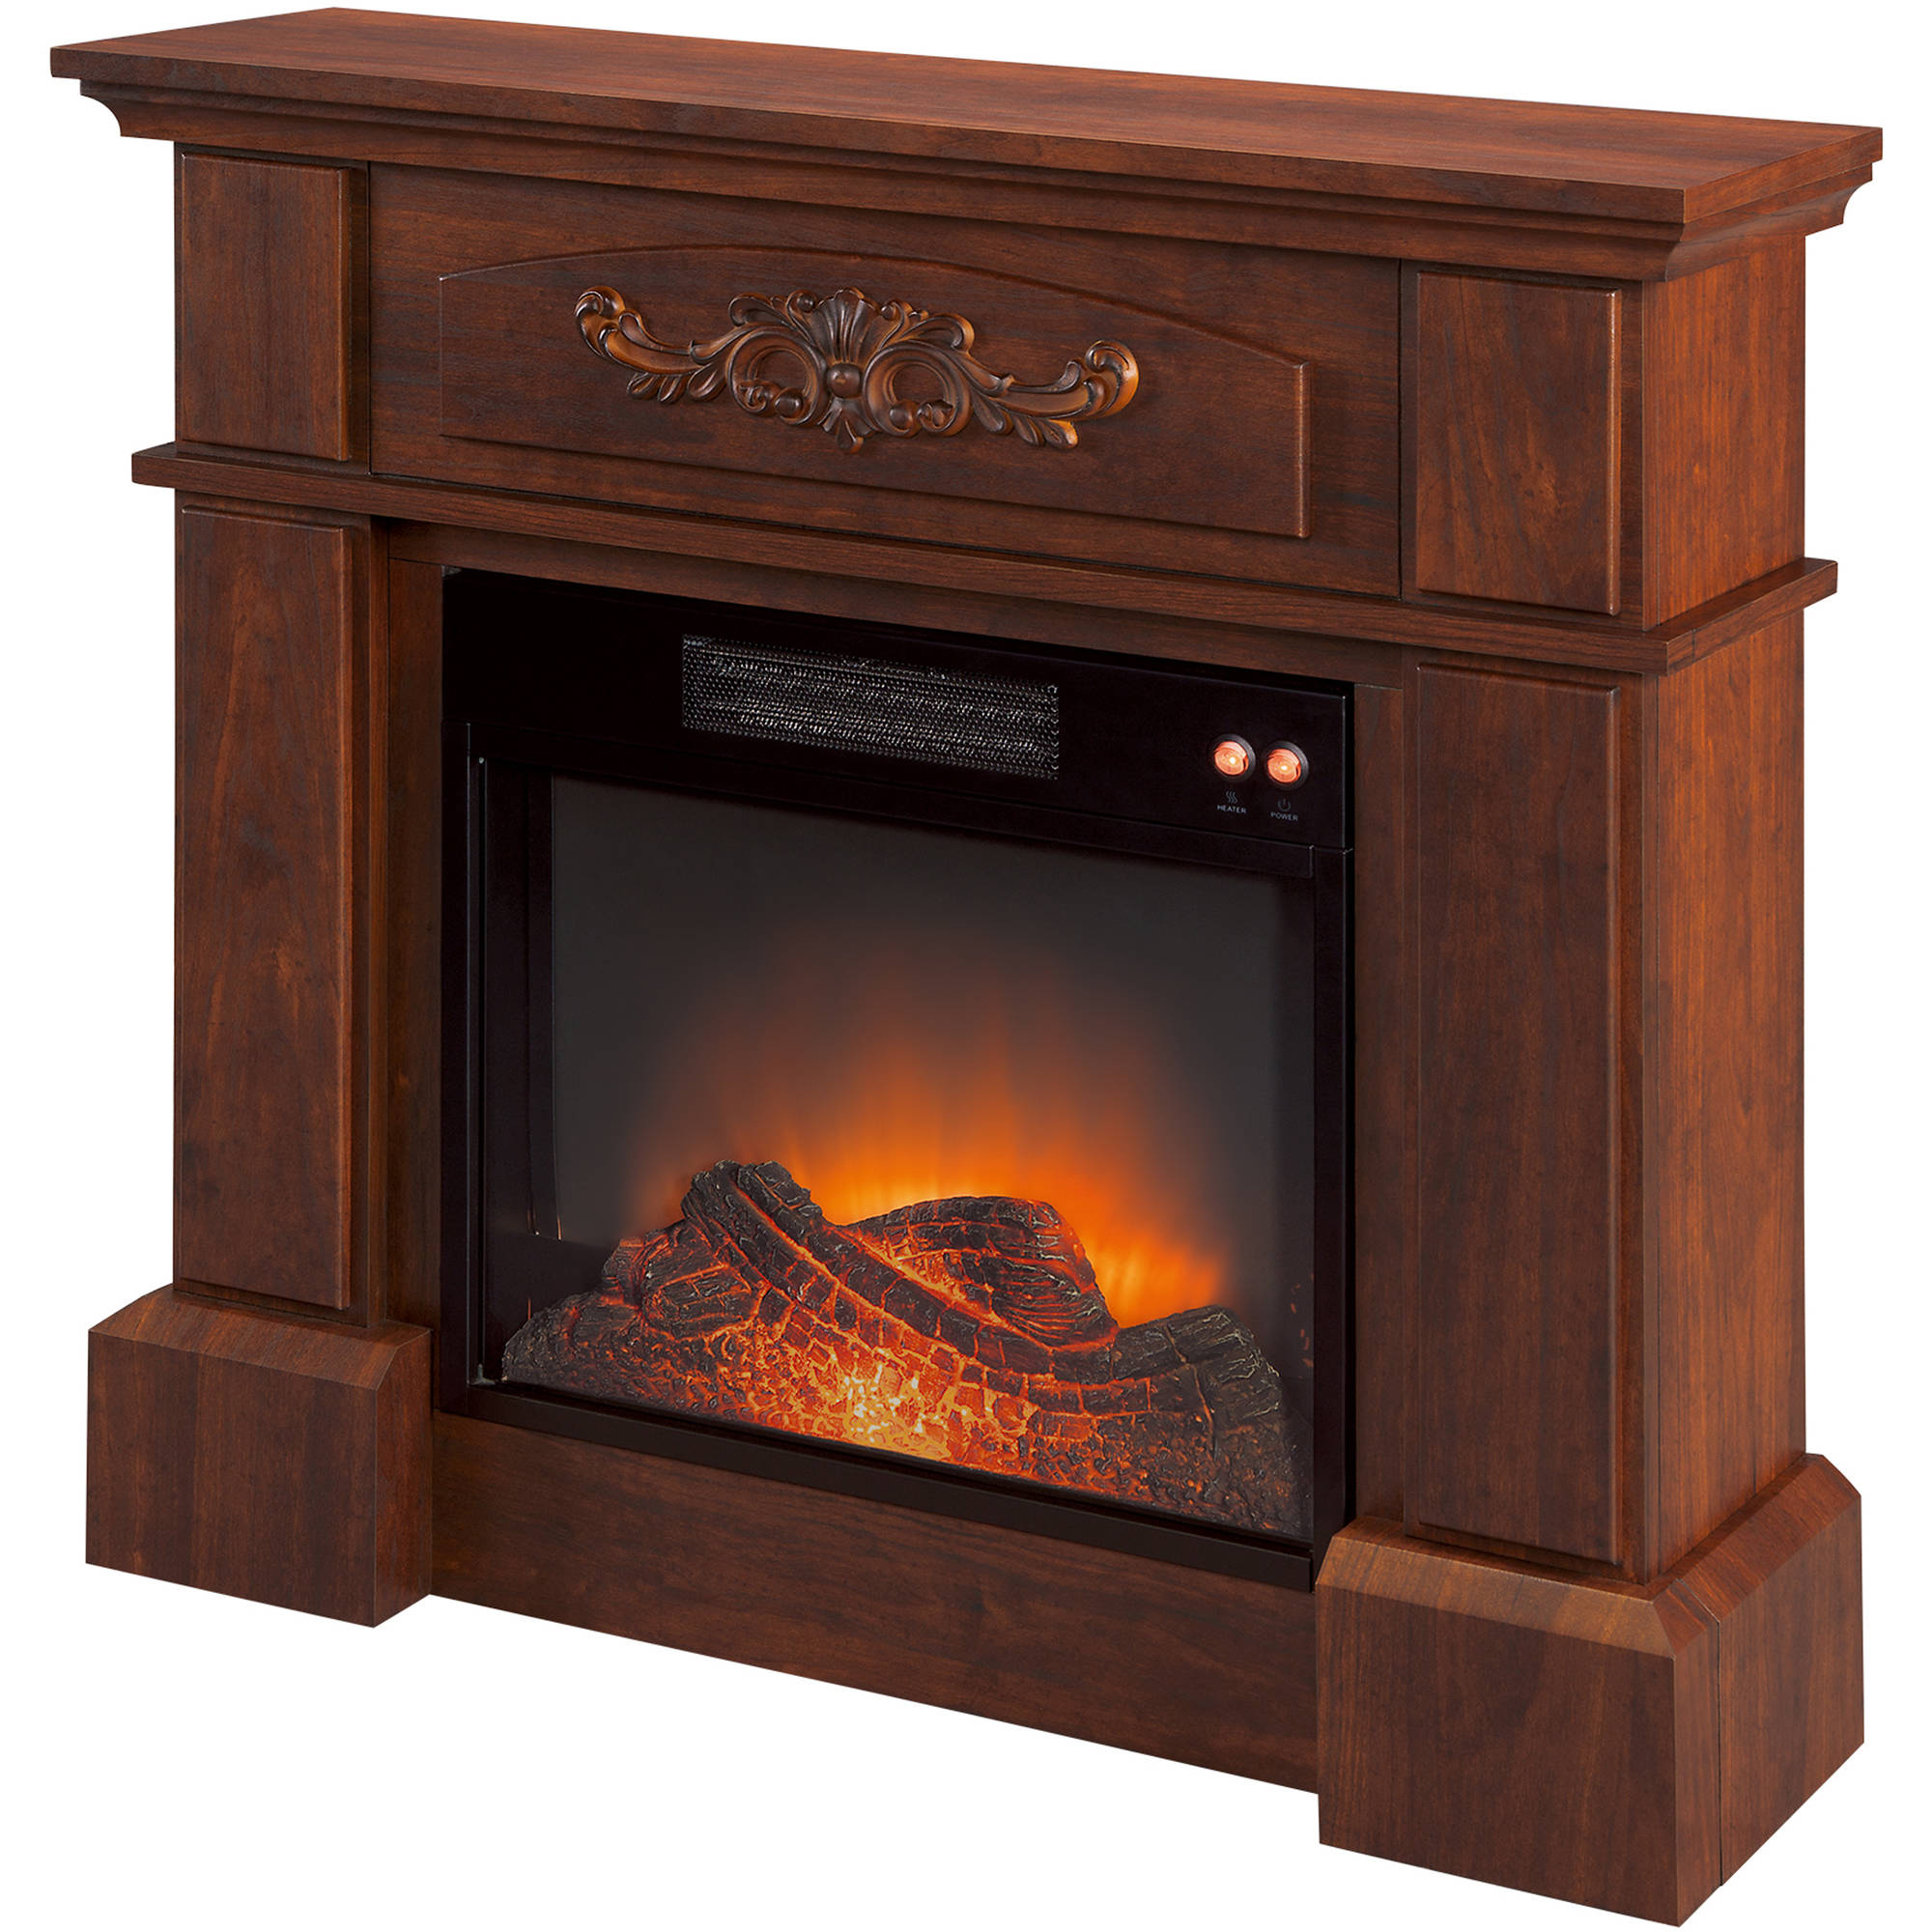 1500w hearth trends infrared electric fireplace walmart com